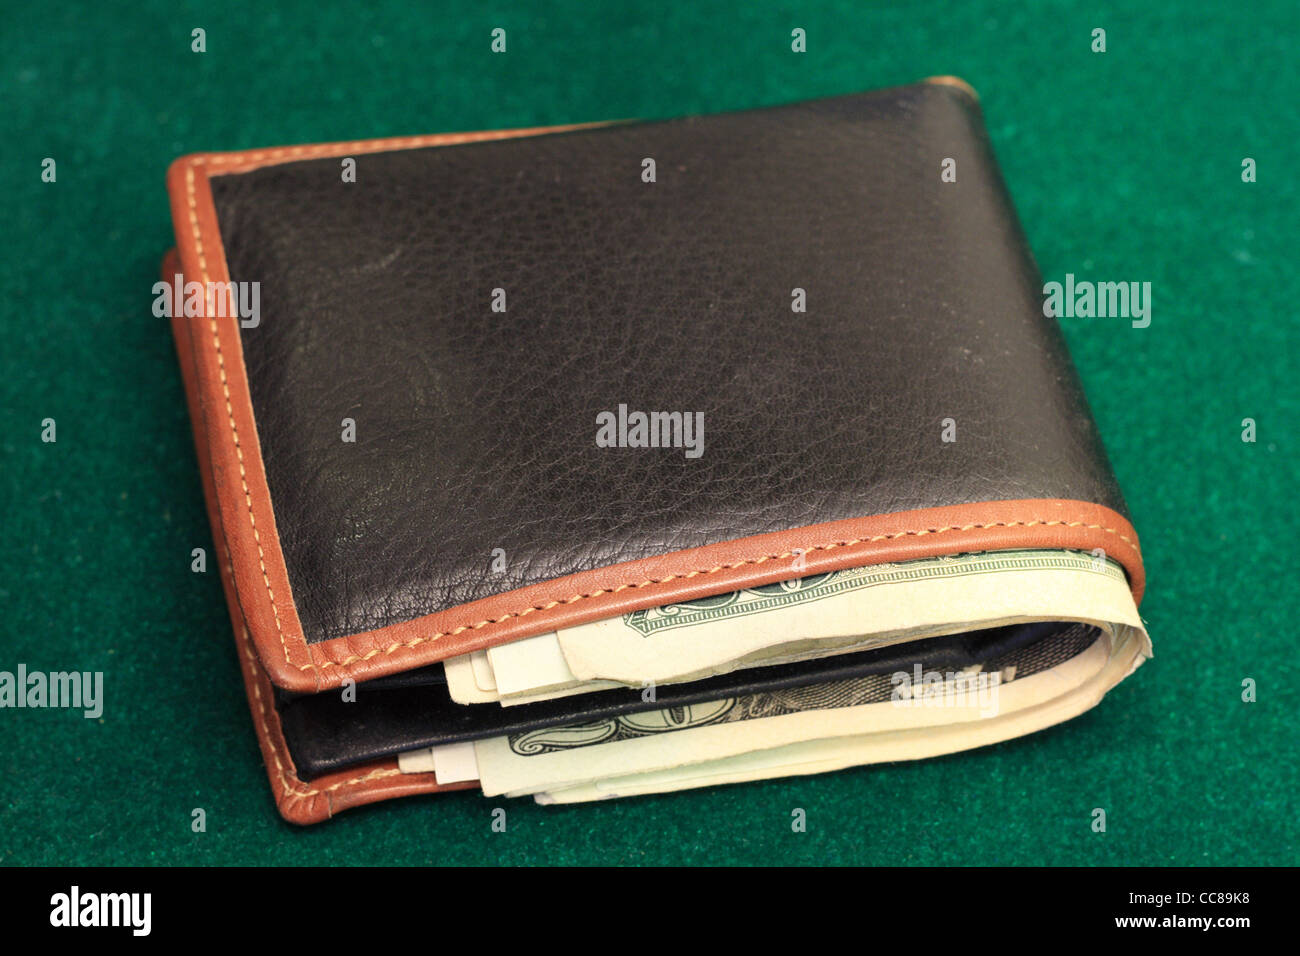 a leather wallet filled with US bills on a green felt background - Stock Image